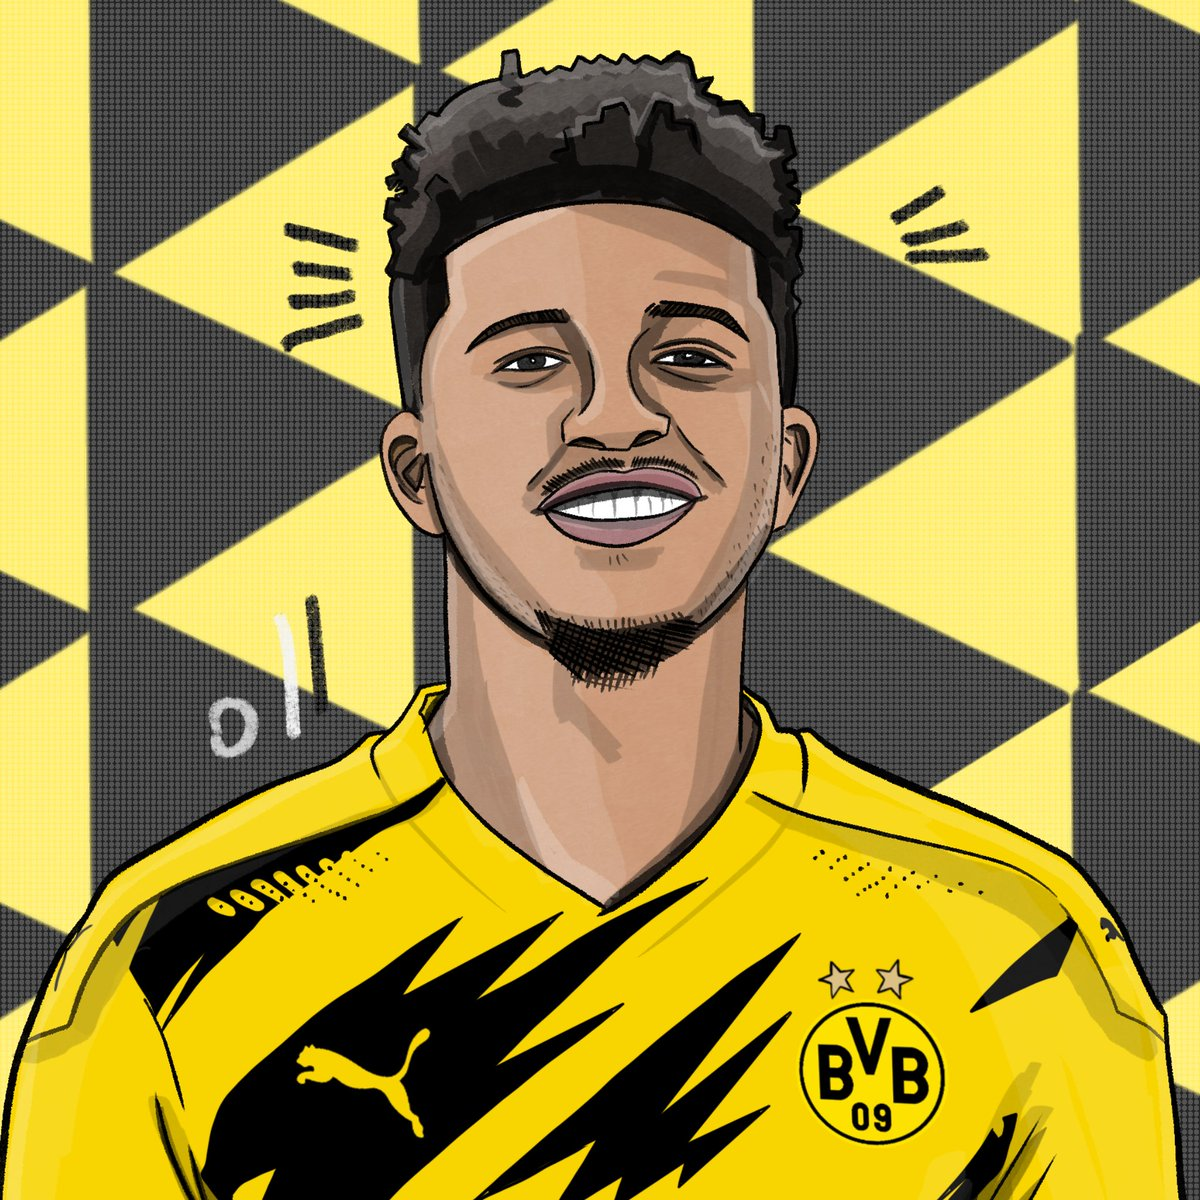 Jadon Sancho in all competitions for Dortmund: 2017-18: 5 goals, 7 assists 2018-19: 13 goals, 20 assists 2019-20: 20 goals, 20 assists 2020-21: 16 goals, 20 assists  🔥 https://t.co/kpA27KKIgW